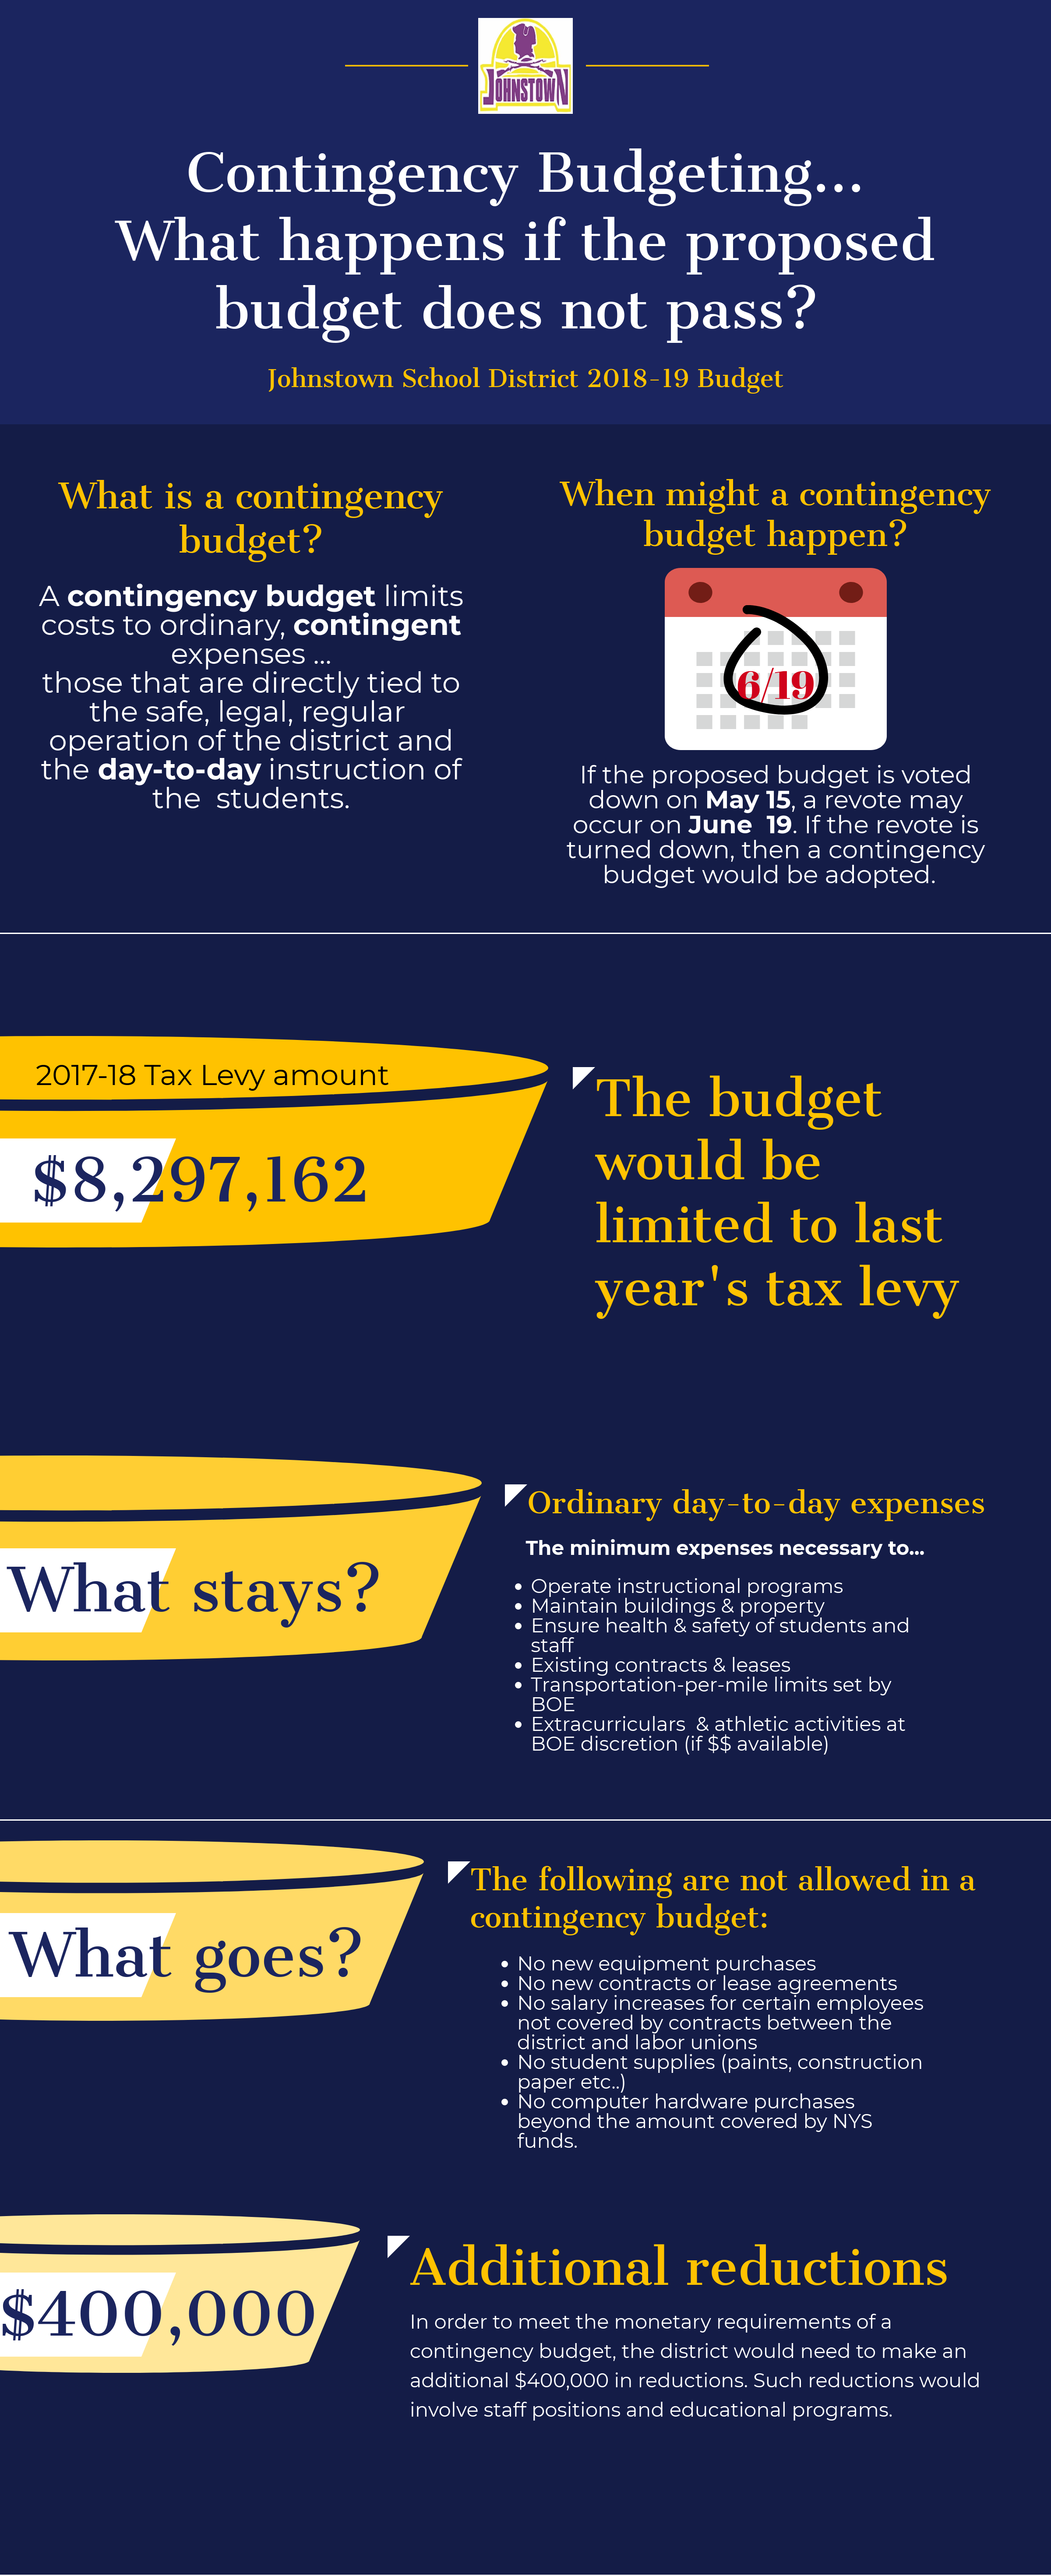 infographic with contingency budget explanations